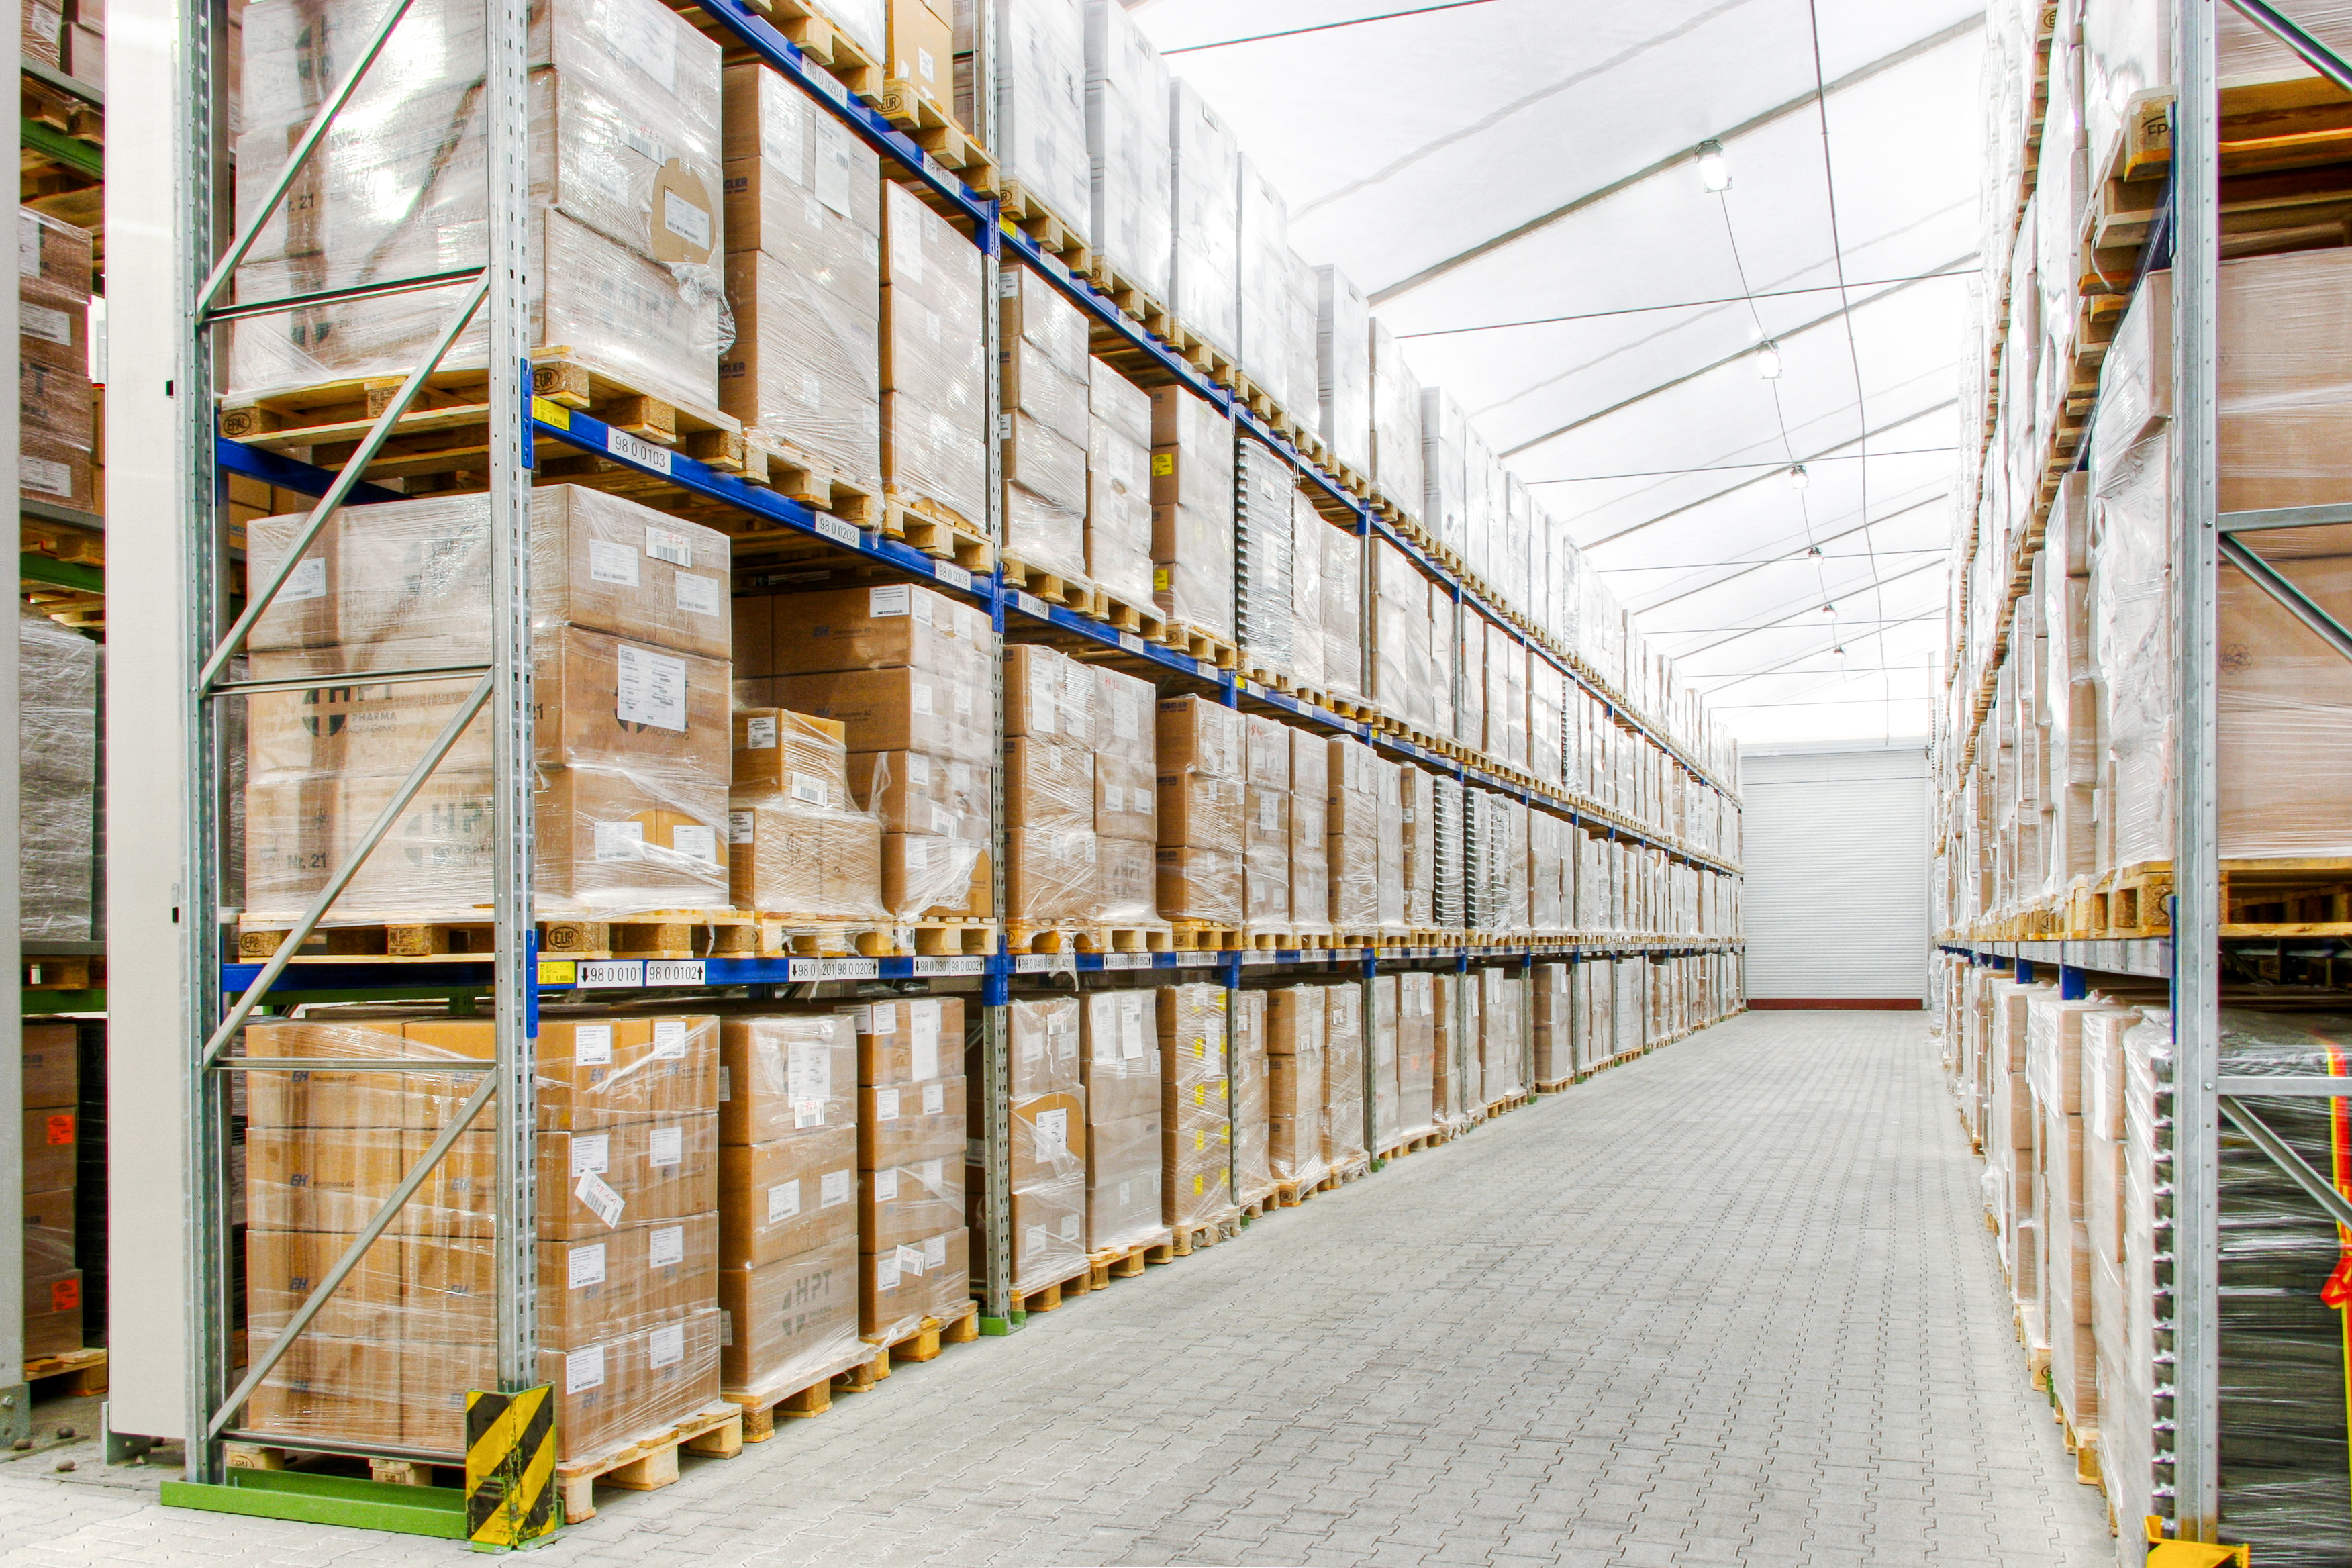 Warehouse for 16,000 pallets